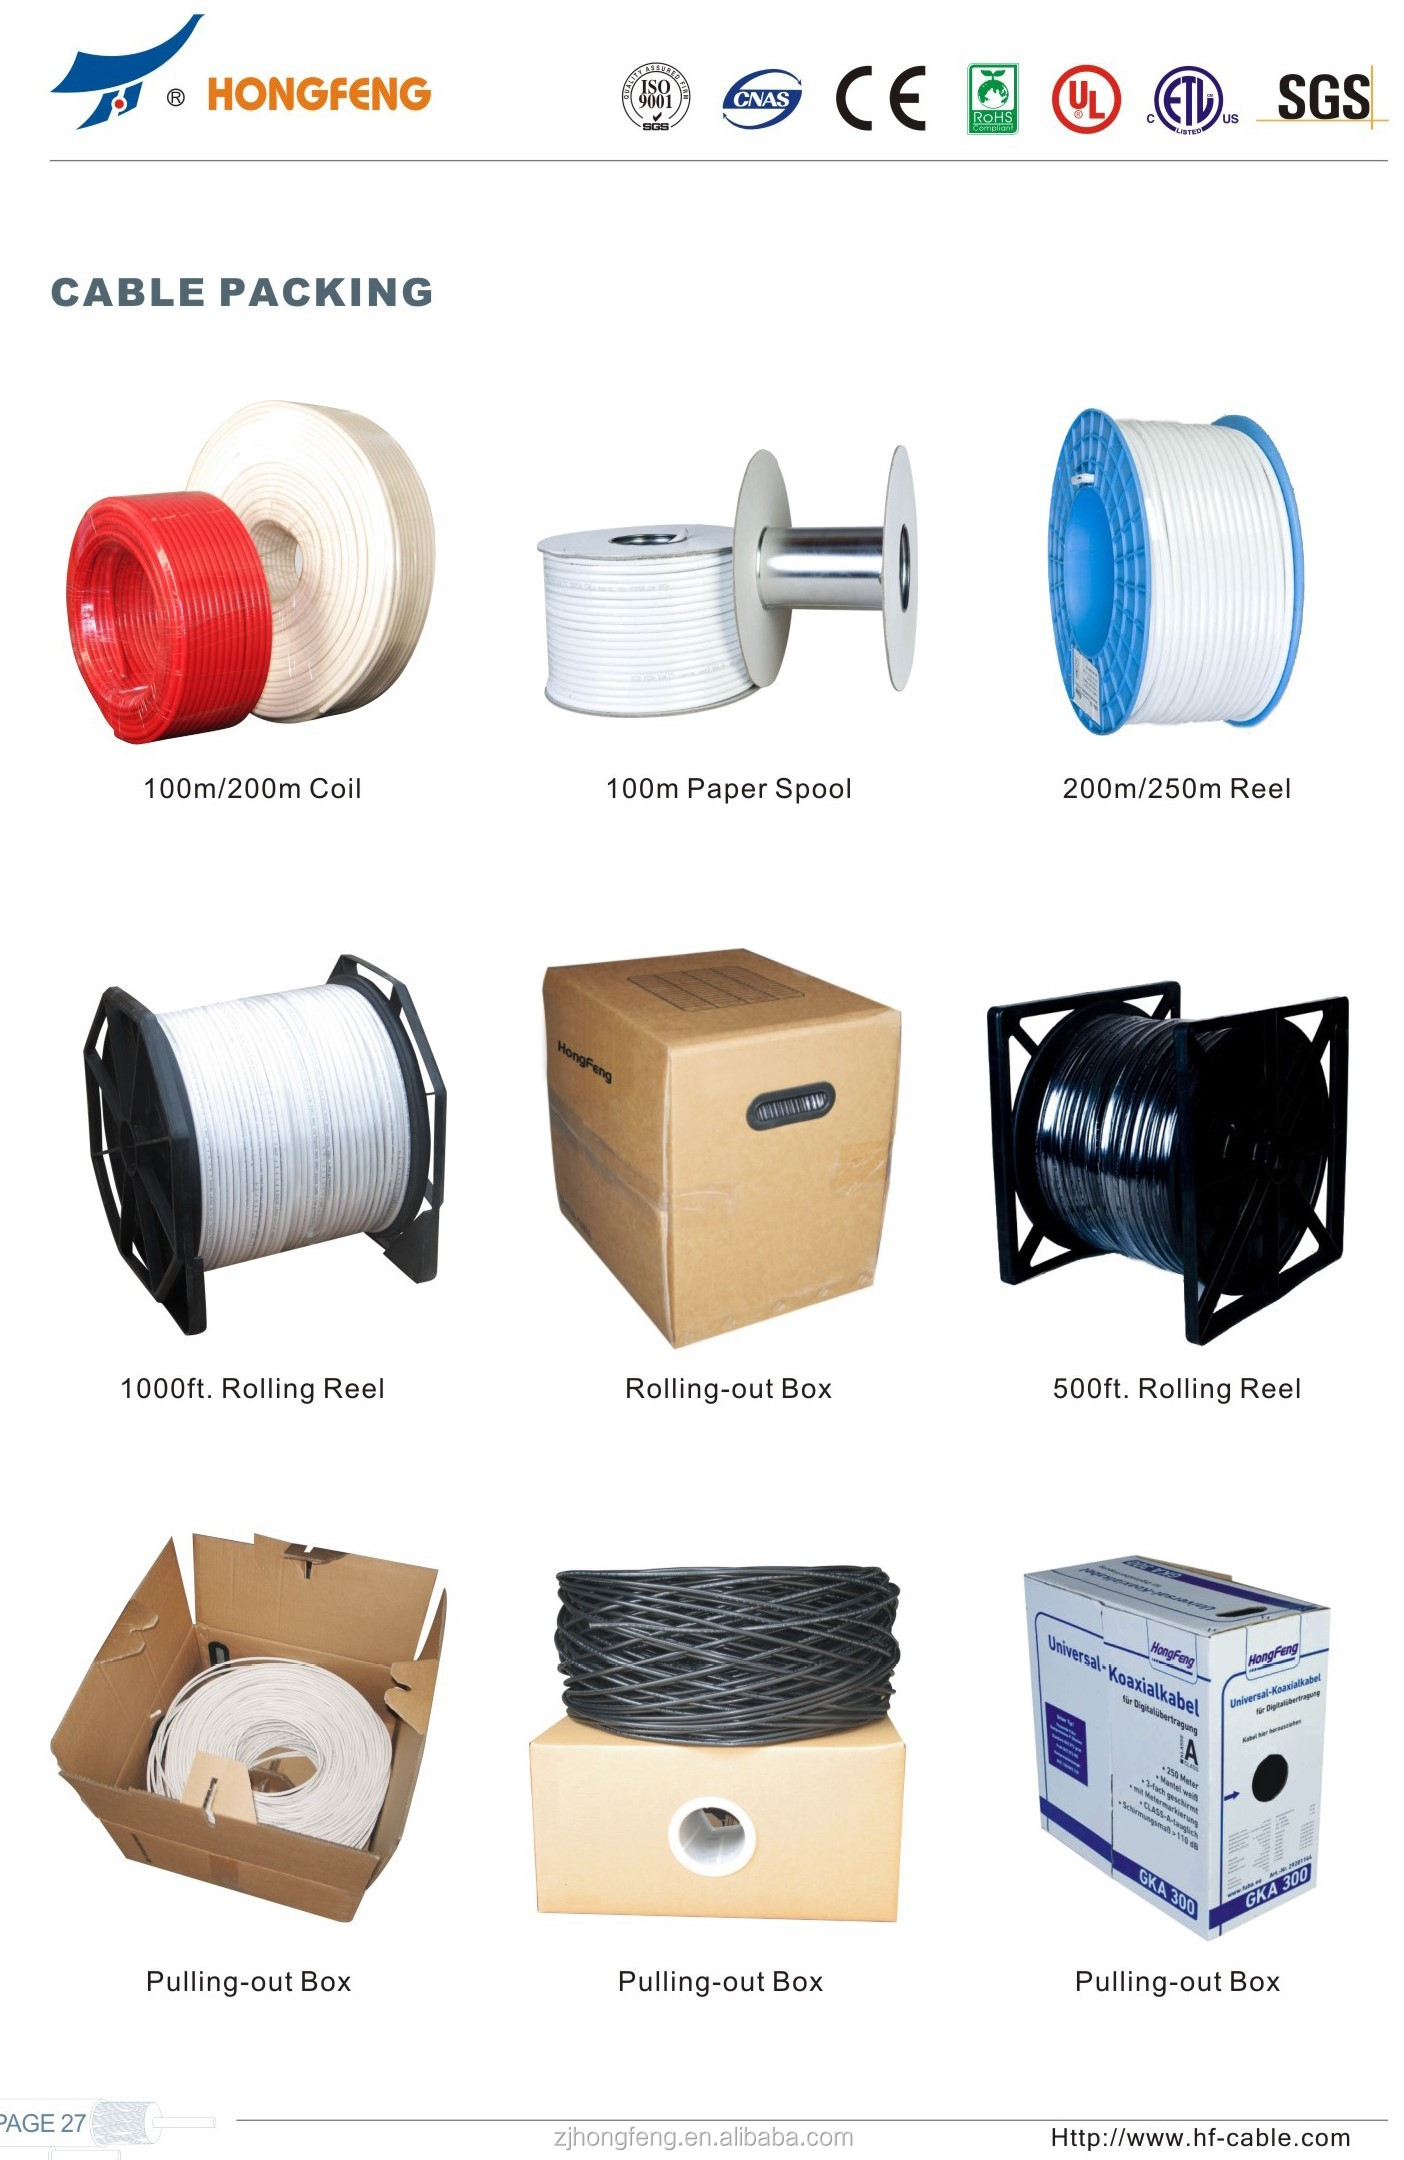 Cable Packing